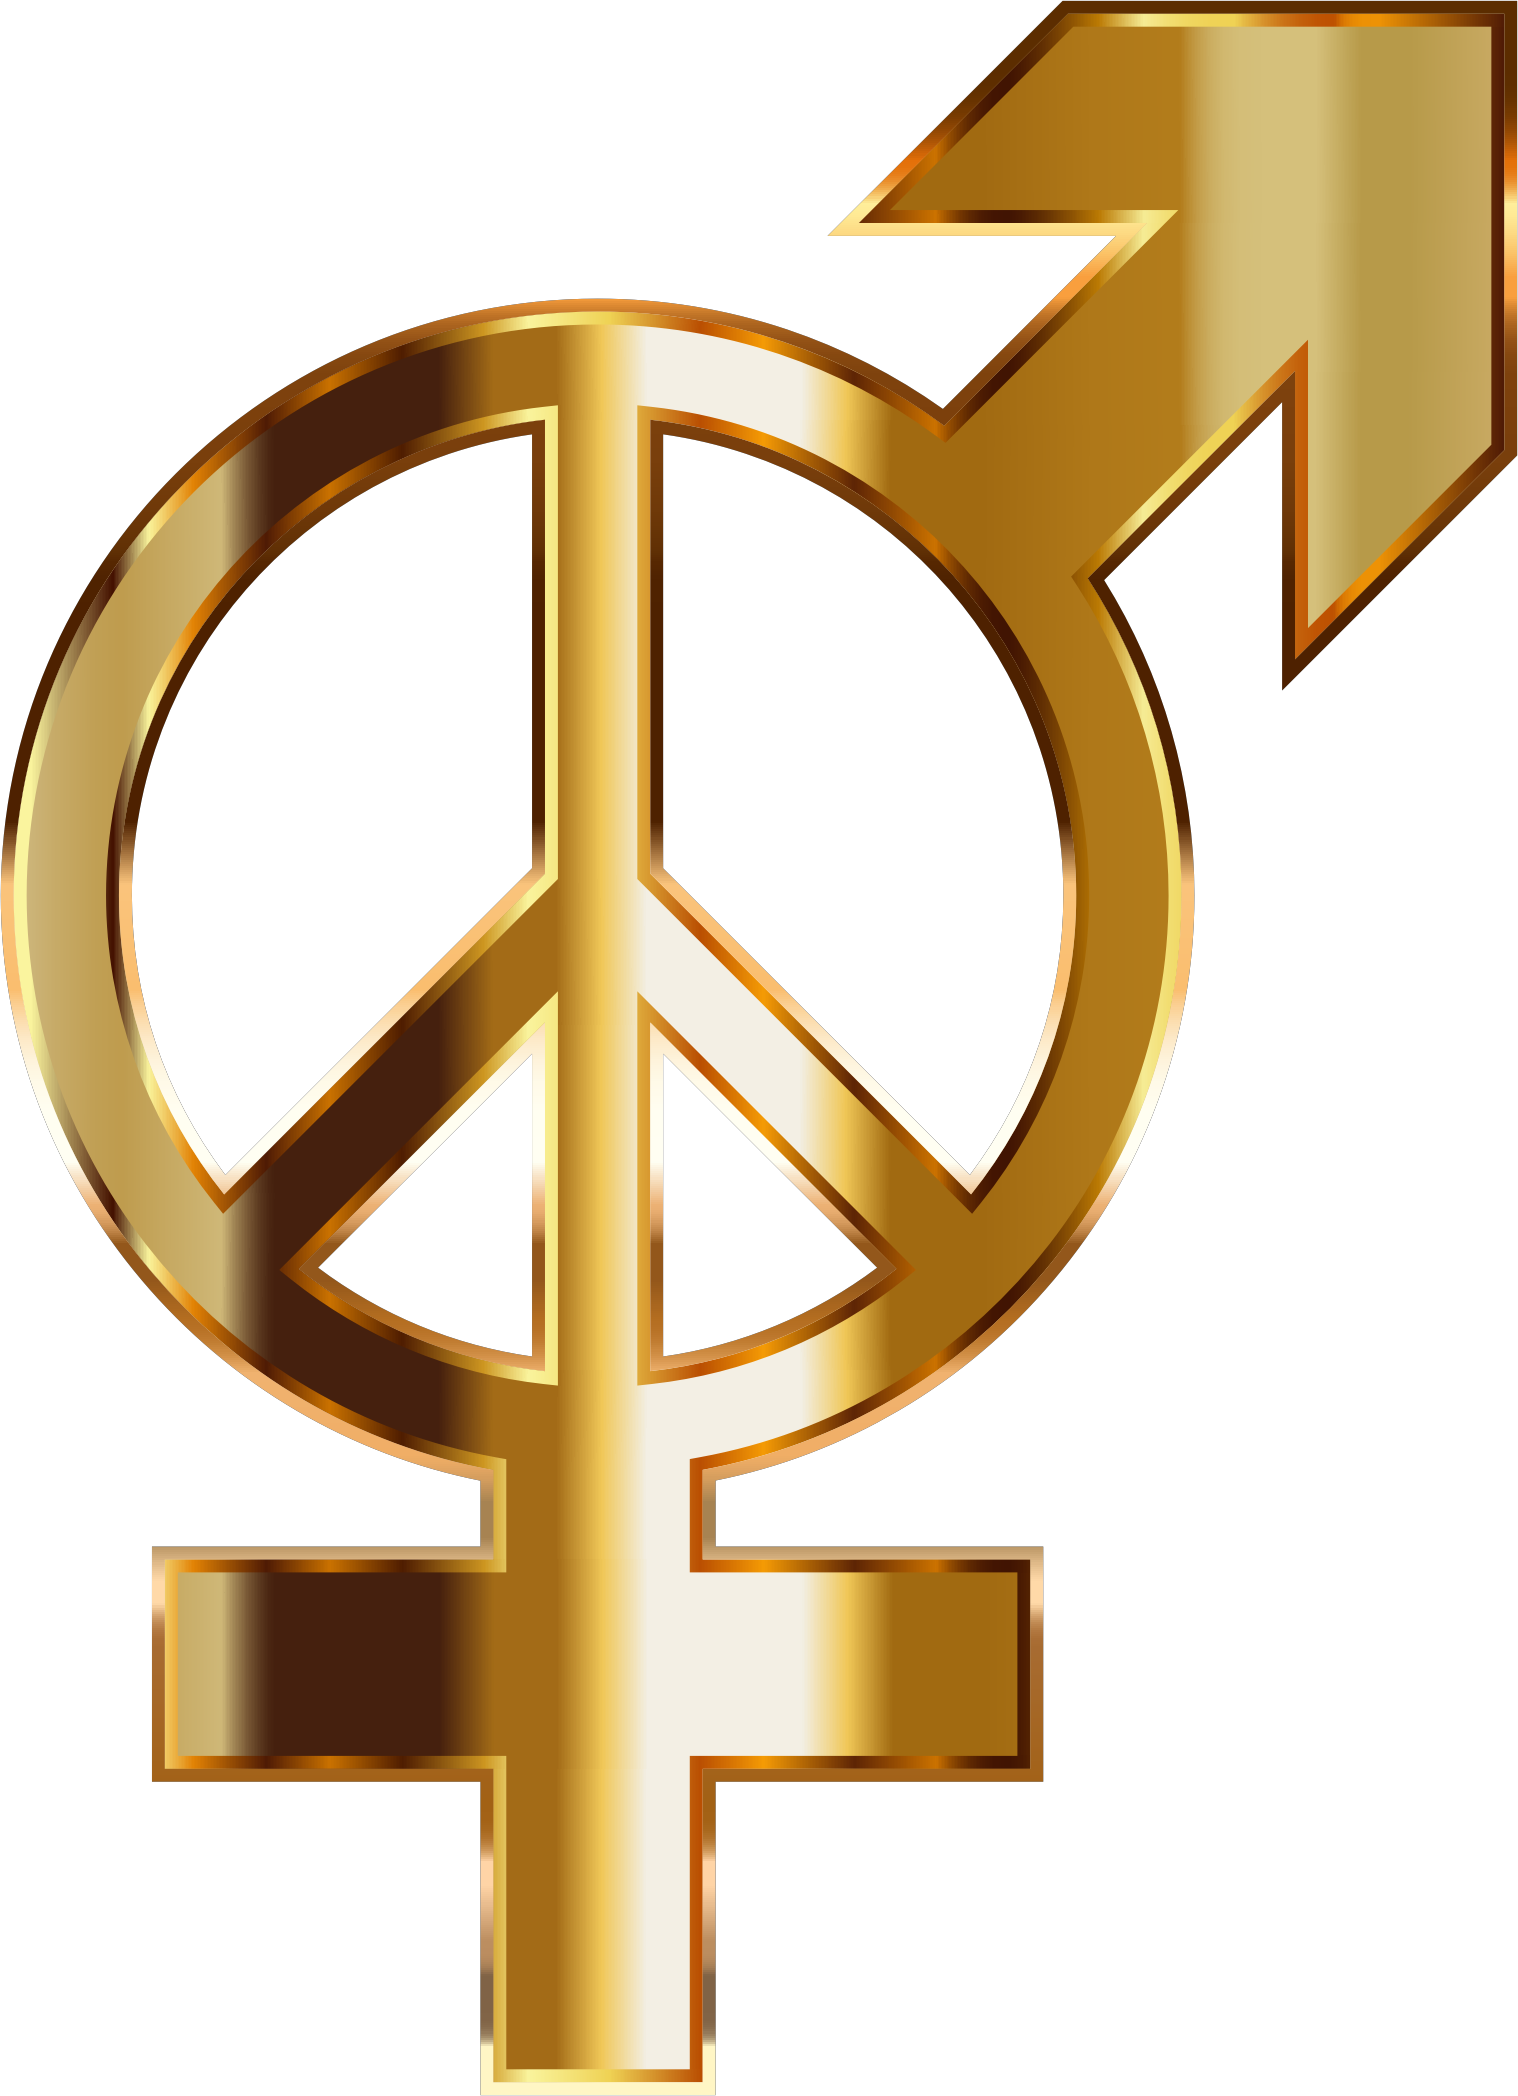 Gold Gender Peace No Background by GDJ